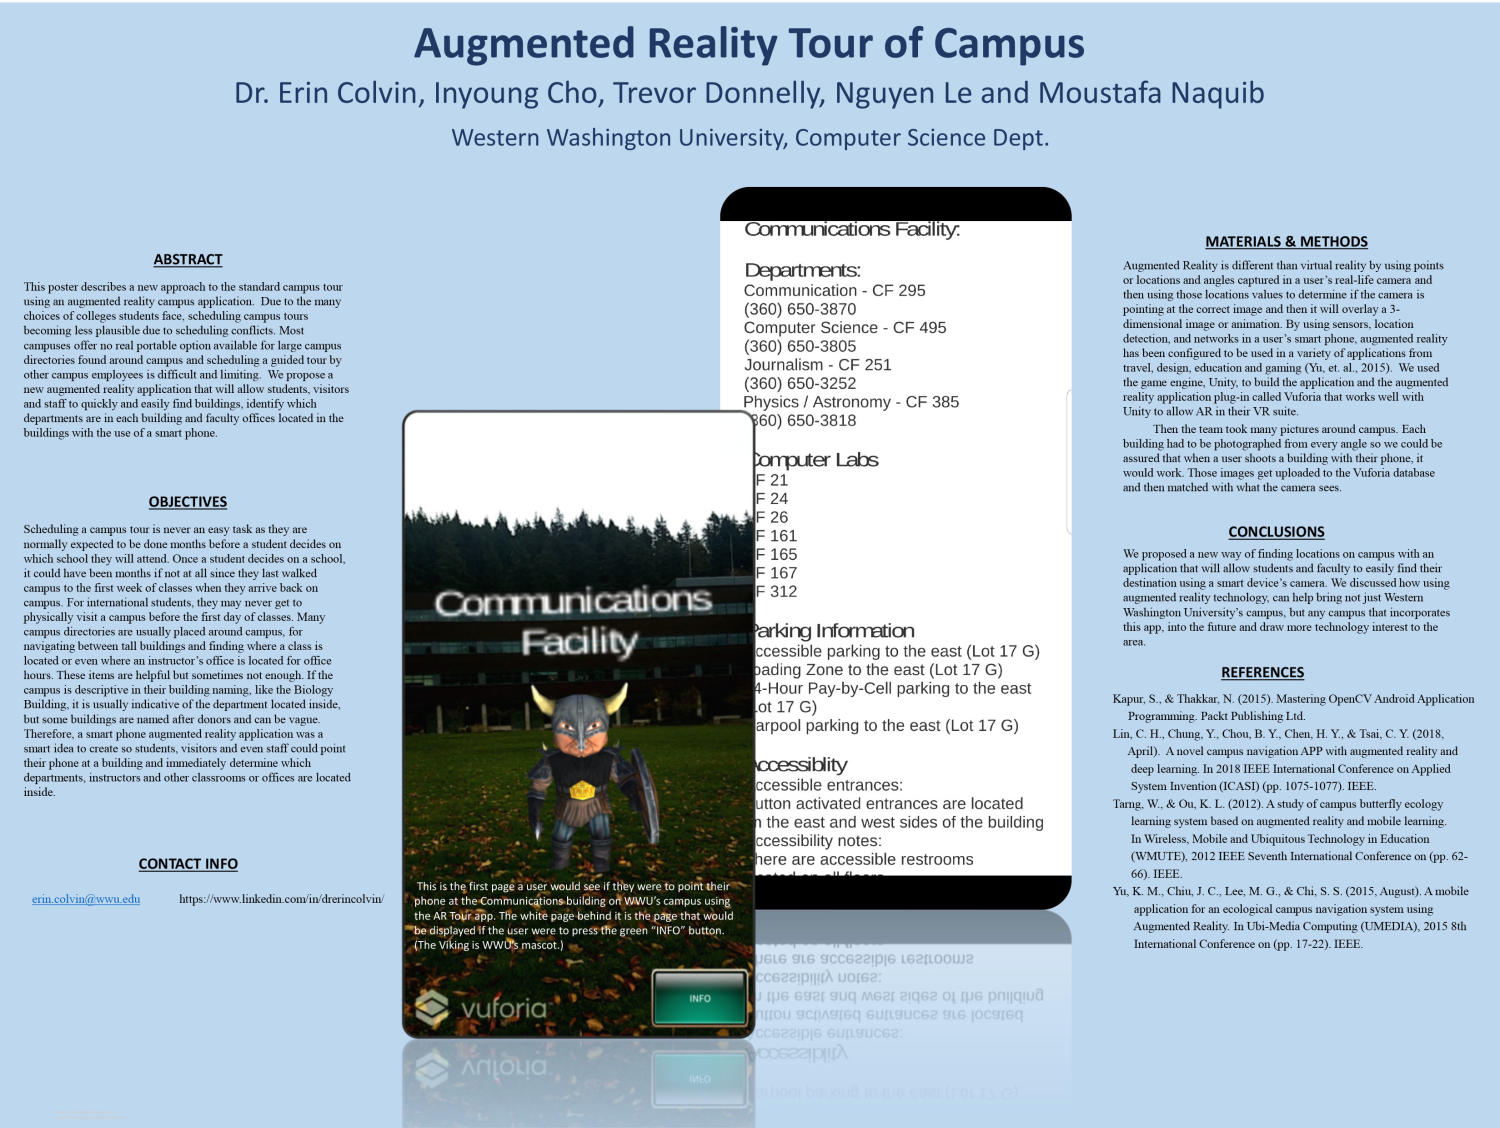 Augmented Reality Tour of Campus - Digital Library